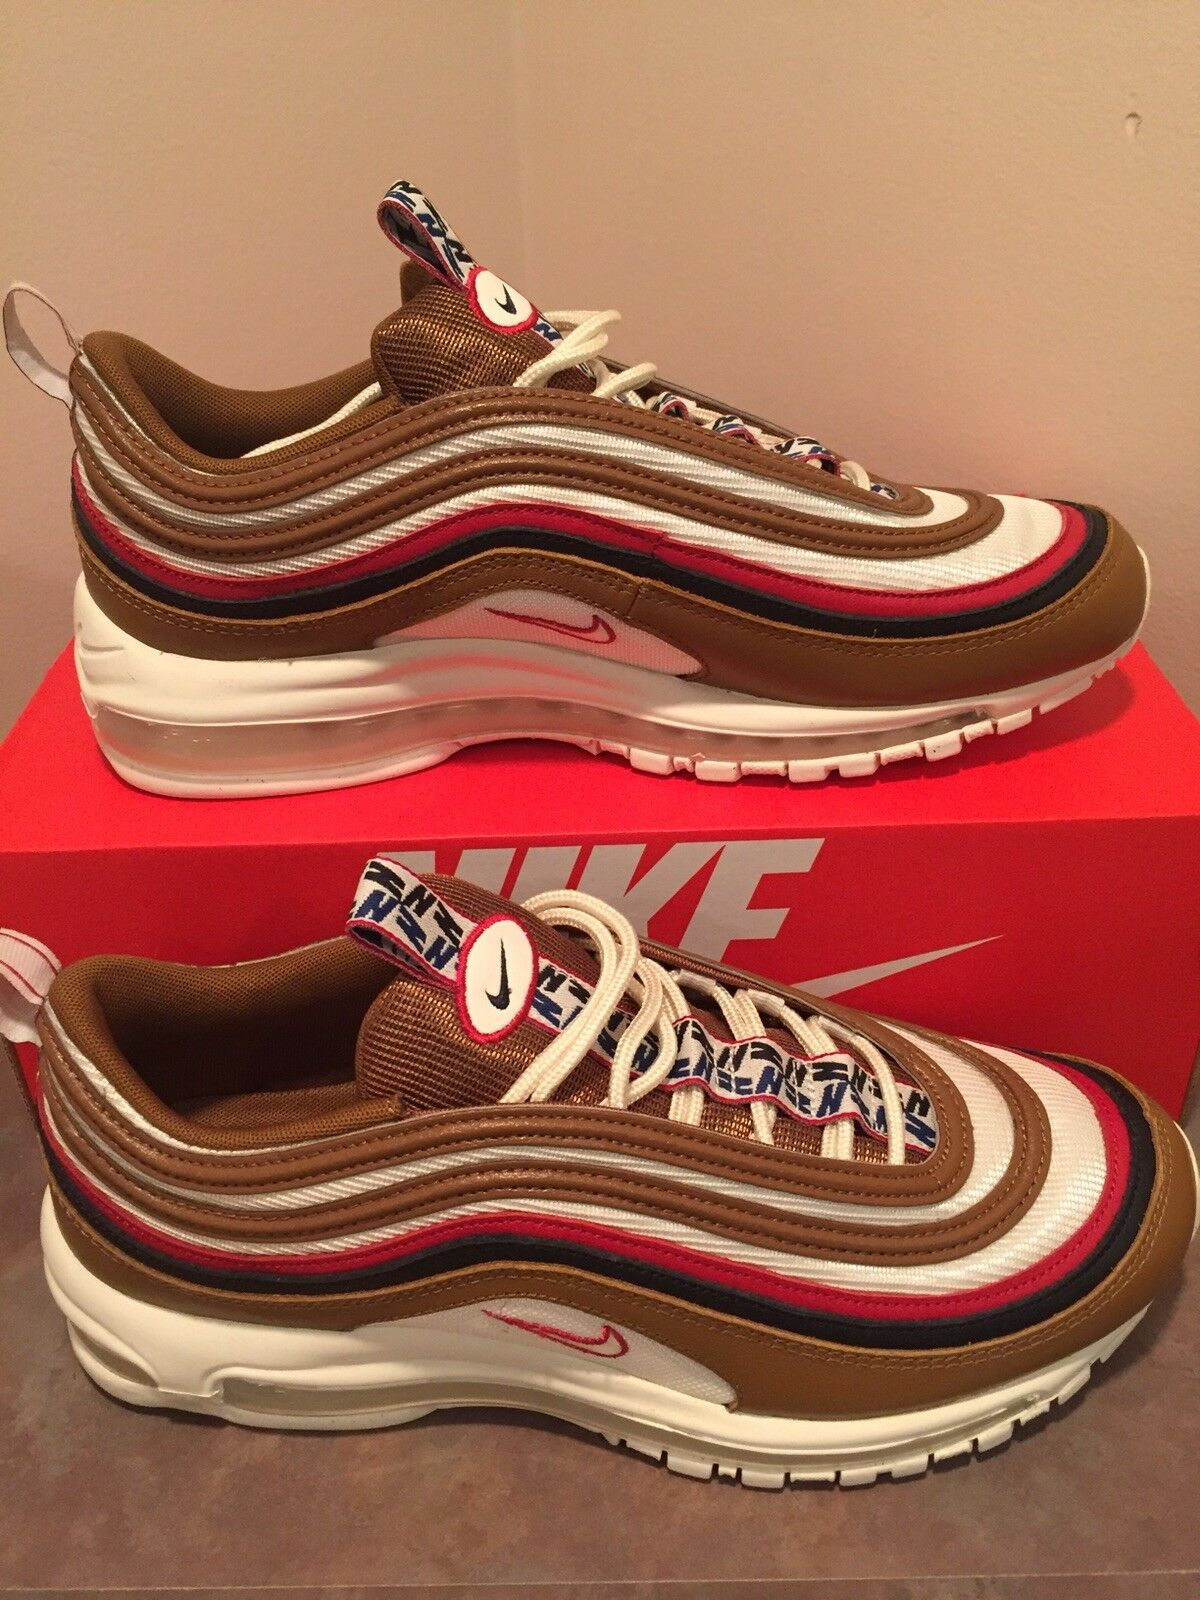 Nike Air Max 97 Pull Tab Comfortable best-selling model of the brand